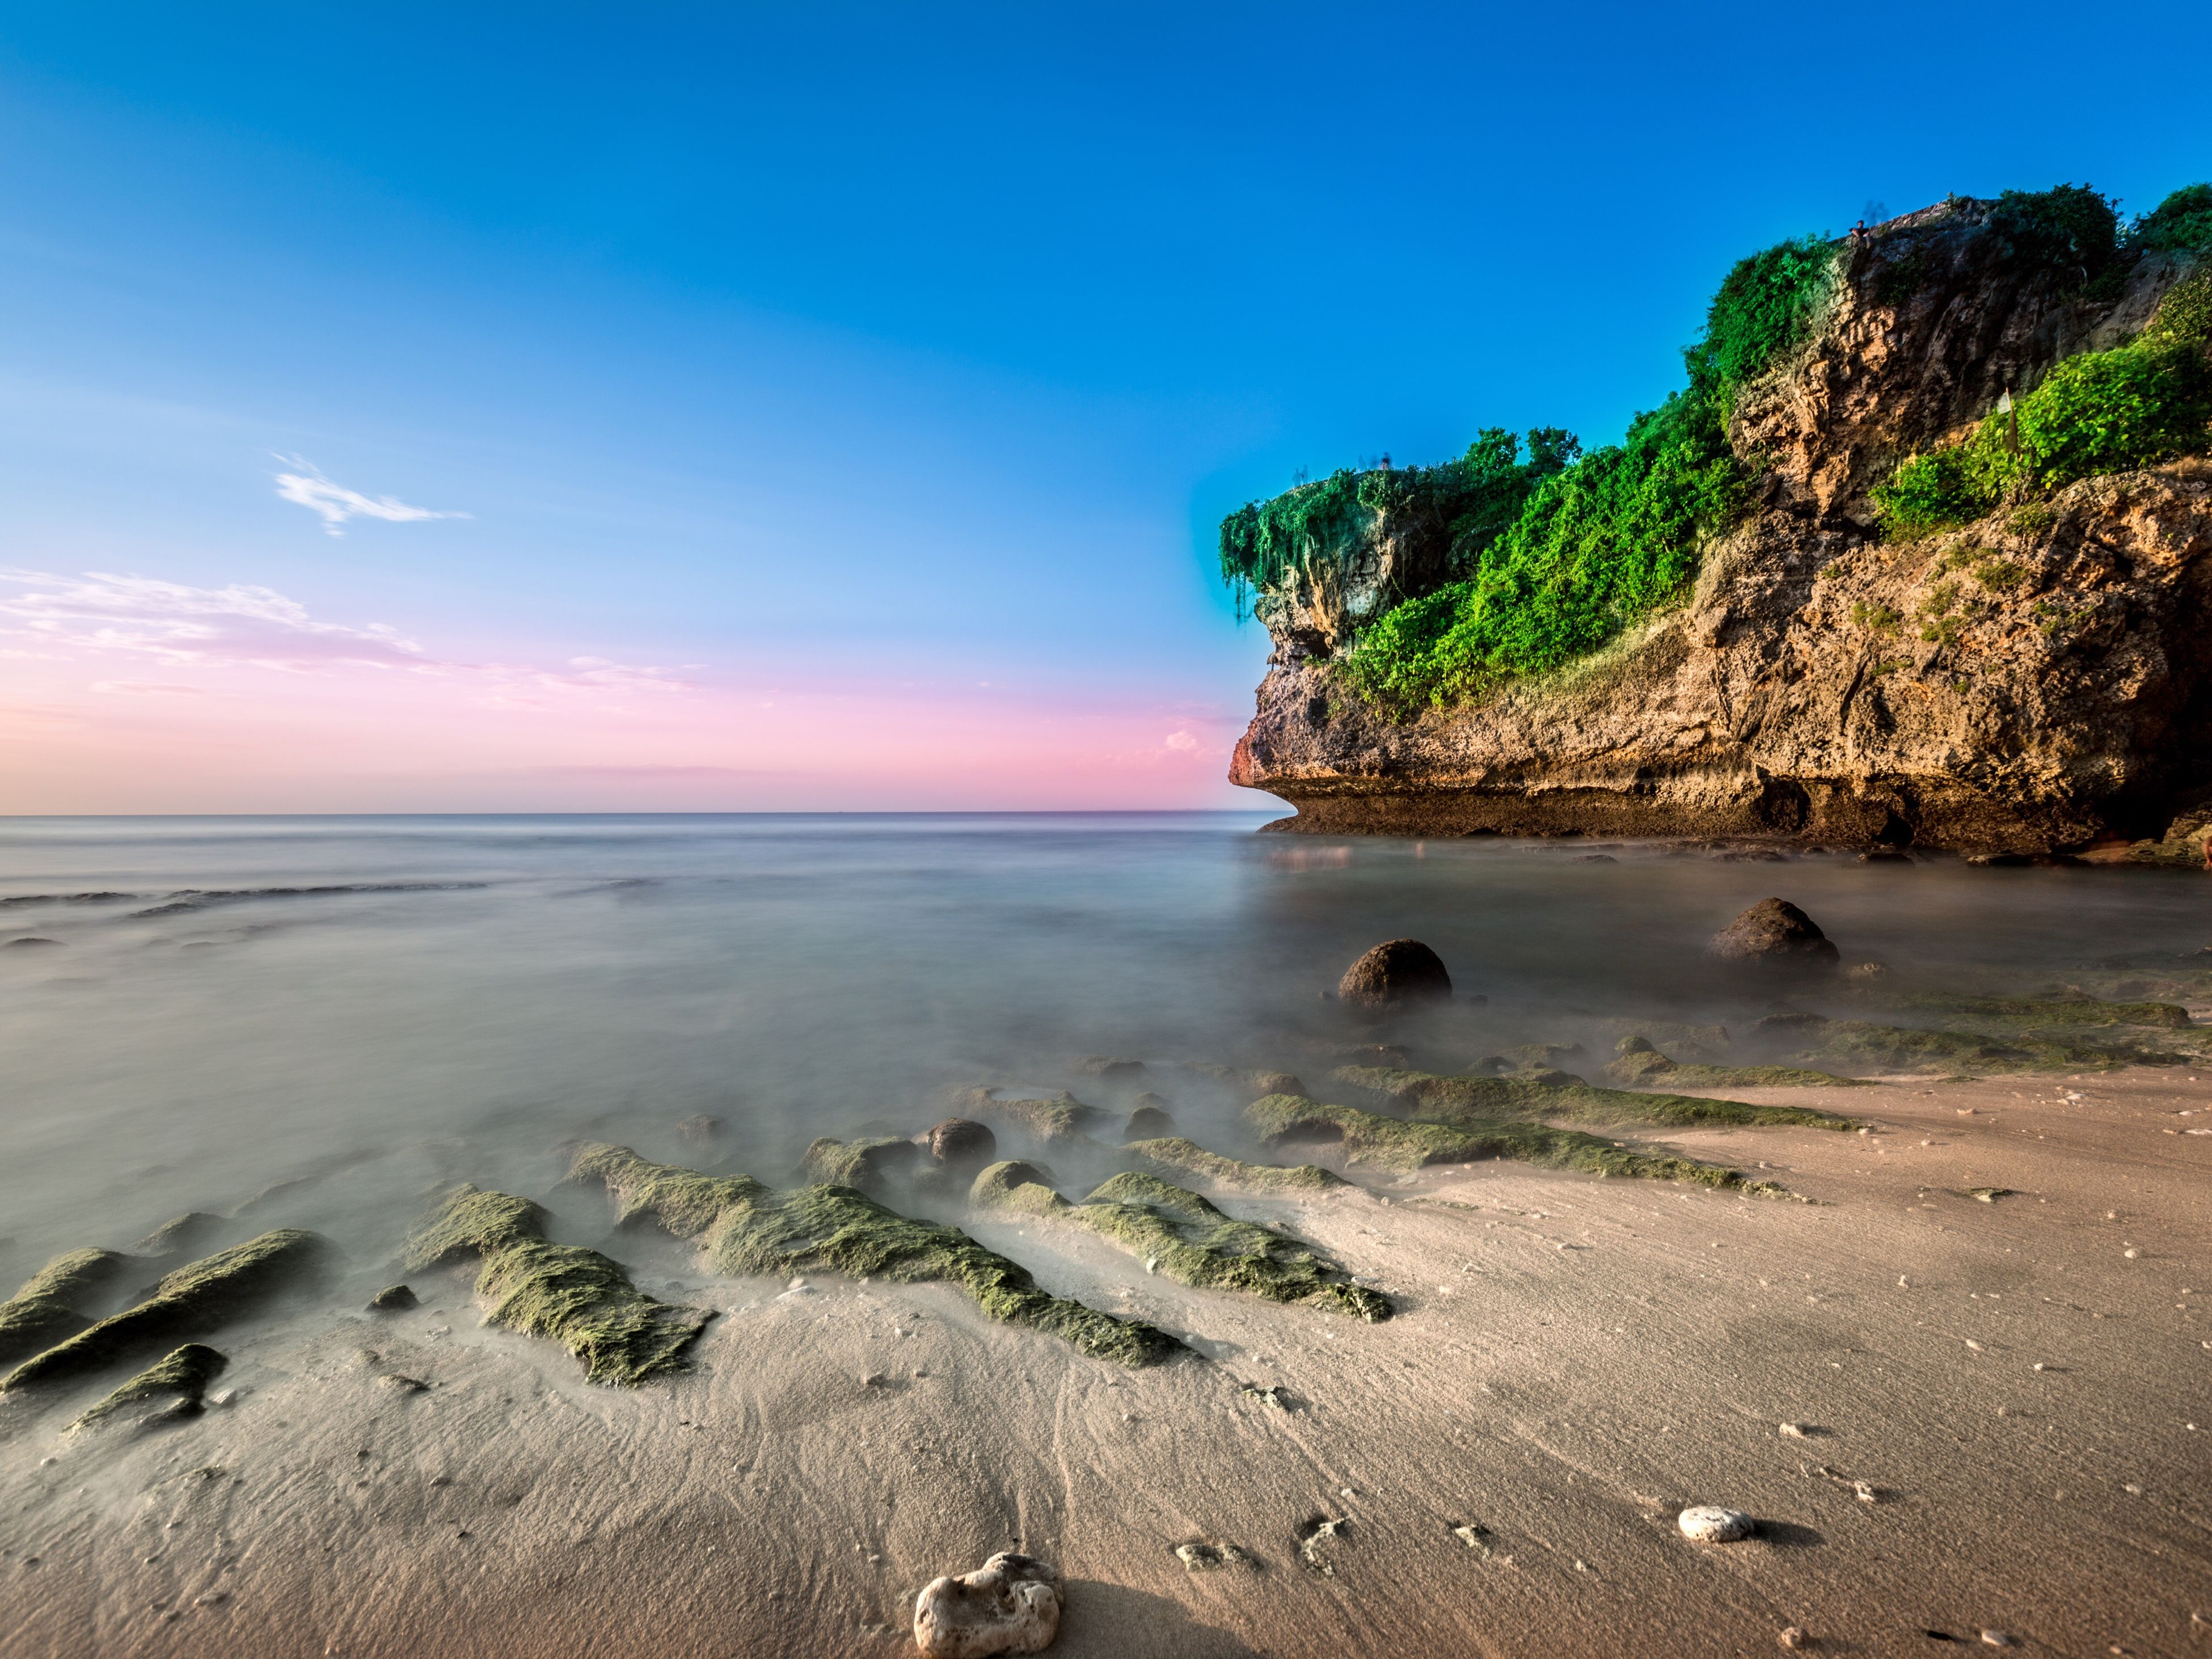 sea, beach, beauty in nature, nature, no people, horizon over water, sky, outdoors, scenics, sand, tranquil scene, sunset, cloud - sky, water, day